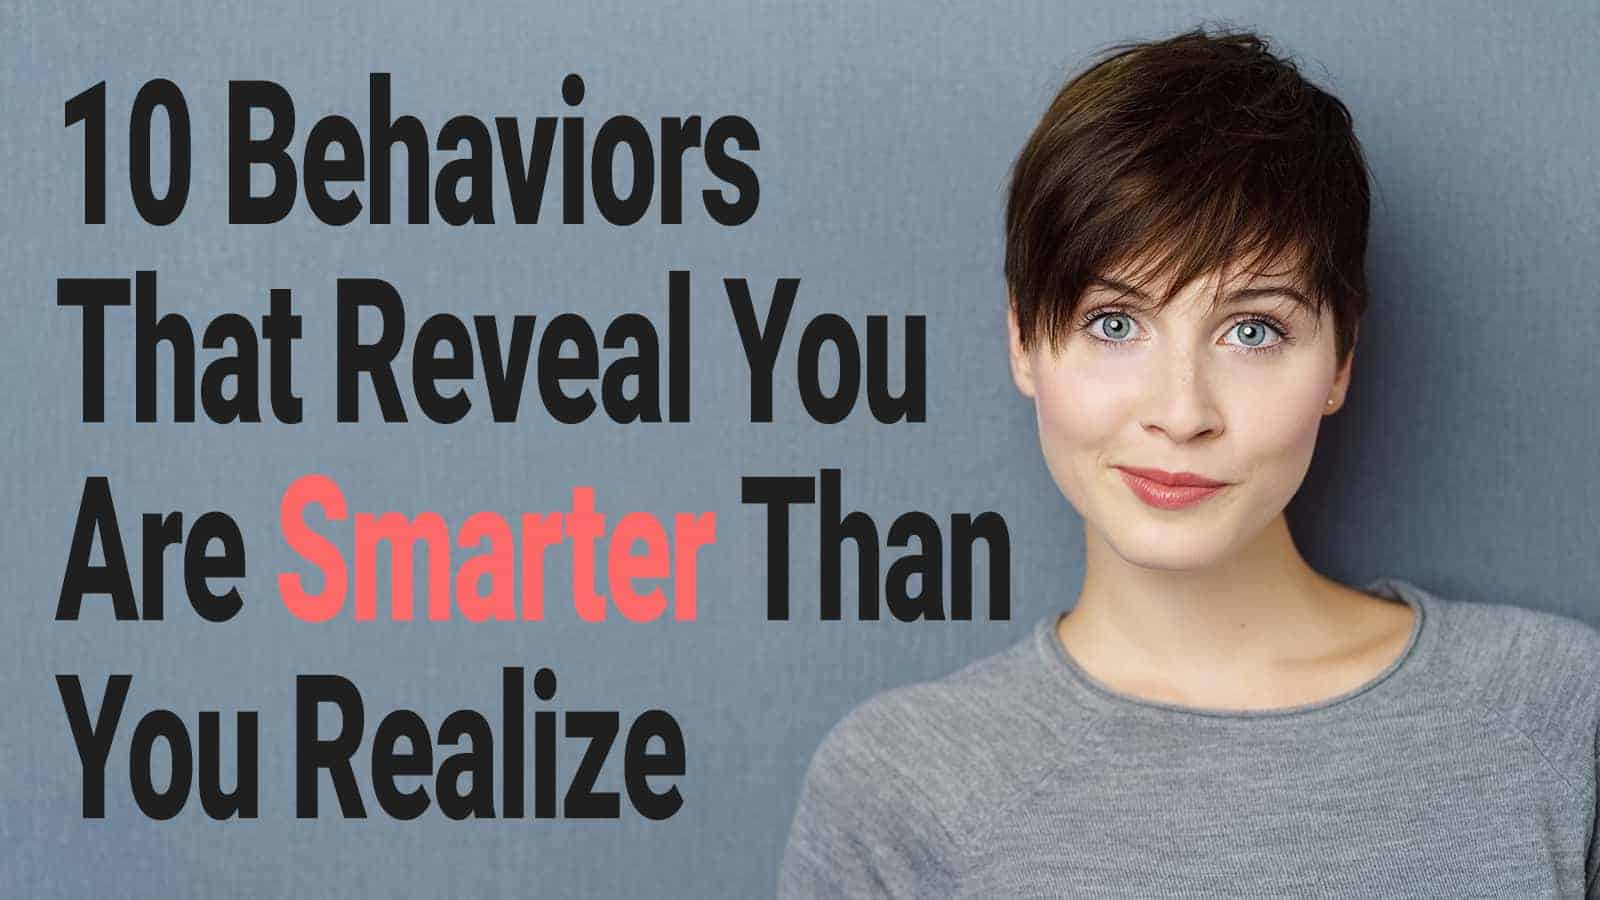 10 Behaviors That Reveal You Are Smarter Than You Realize